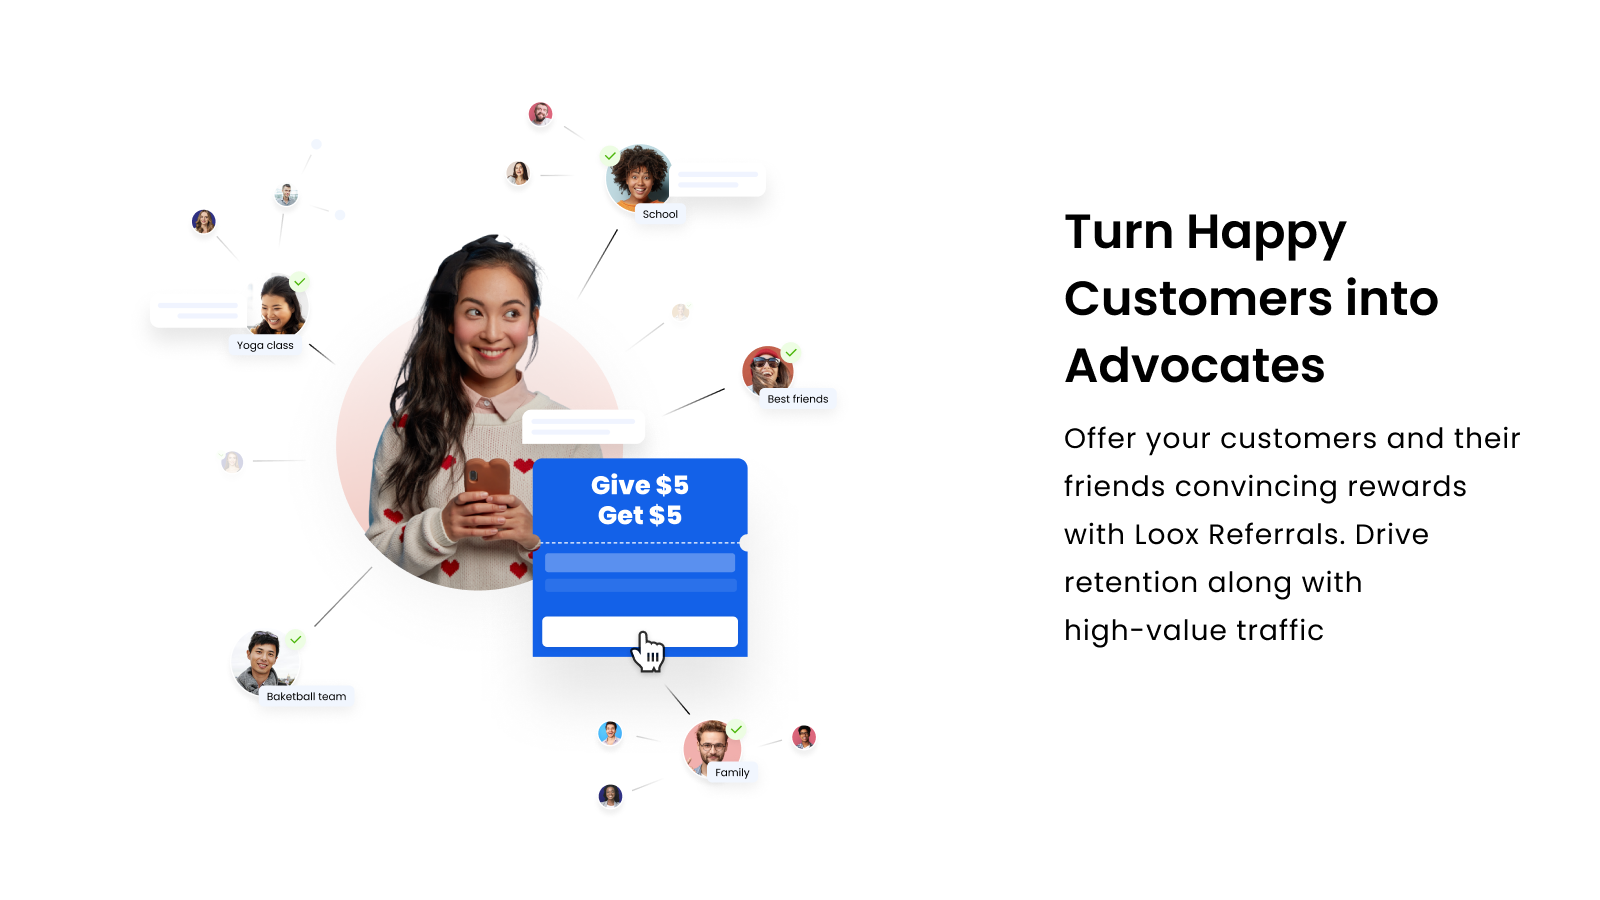 Turn your happy customers into brand advocates